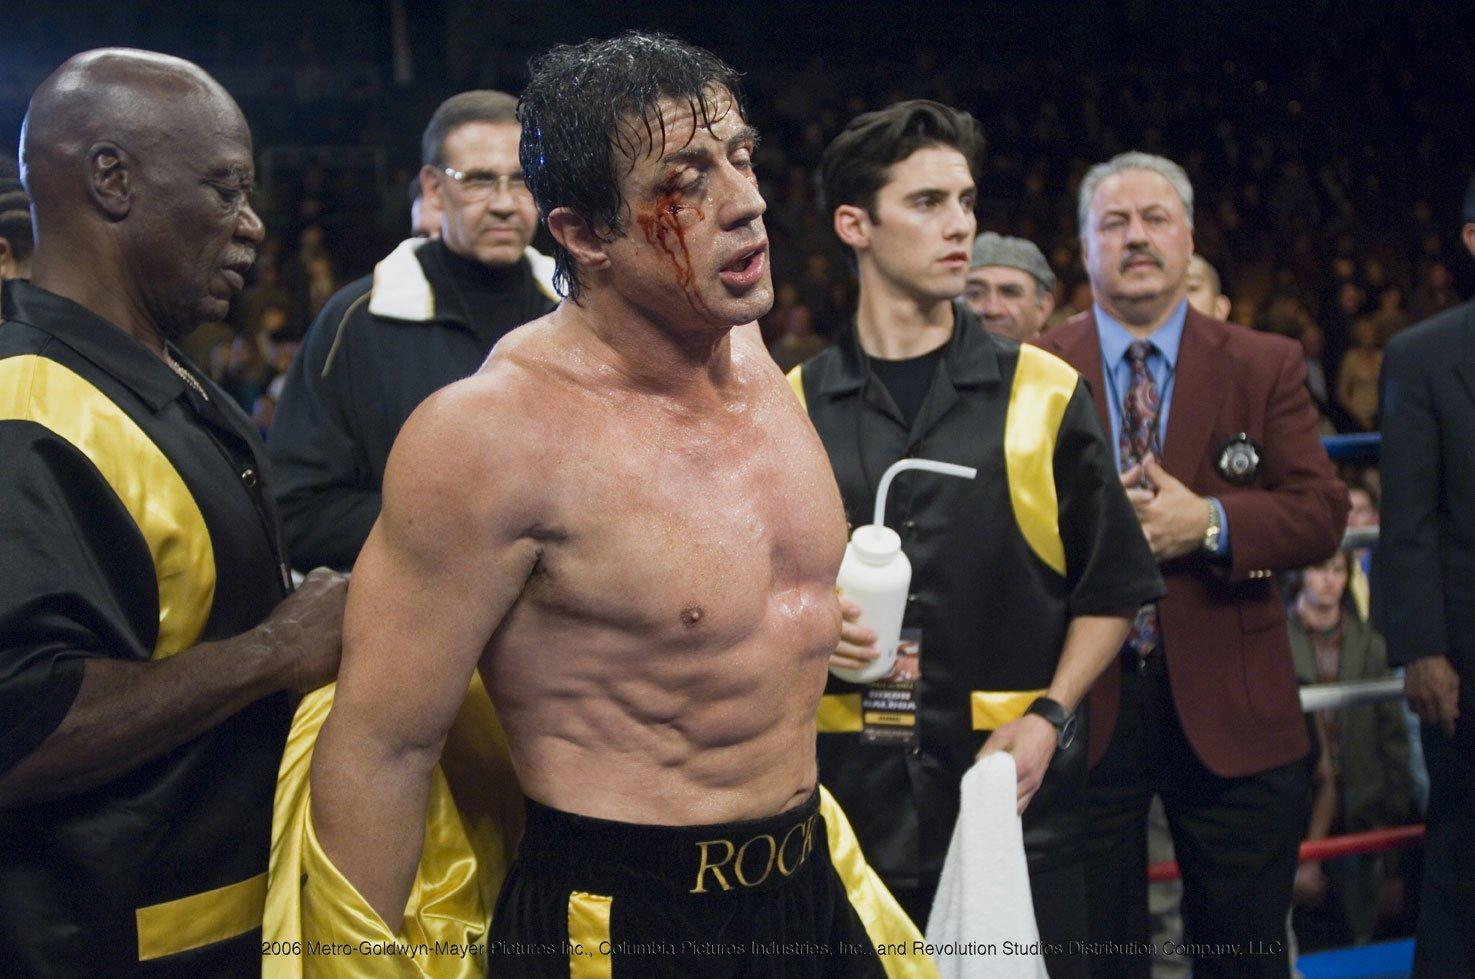 Rocky Balboa Wallpaper and Background Image | 1475x979 | ID:341560 ...